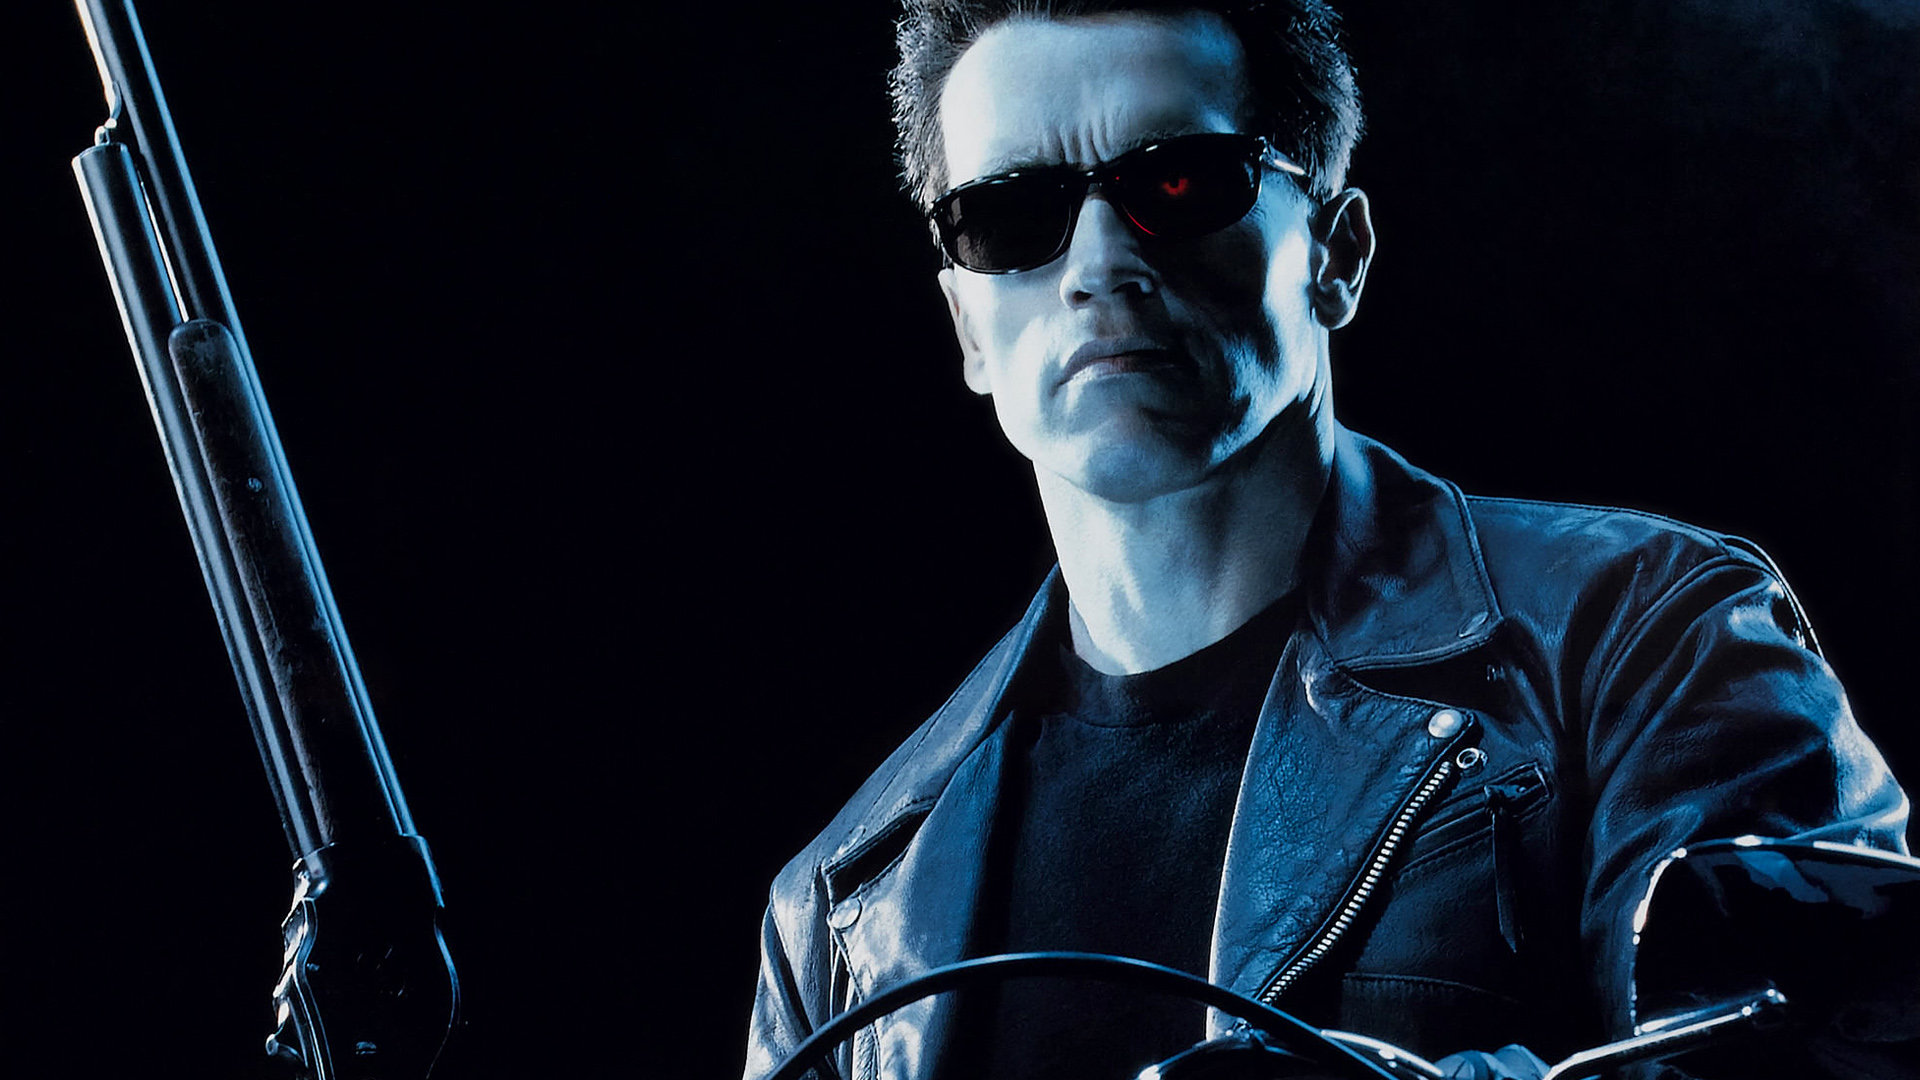 First image from set of Terminator Genesis